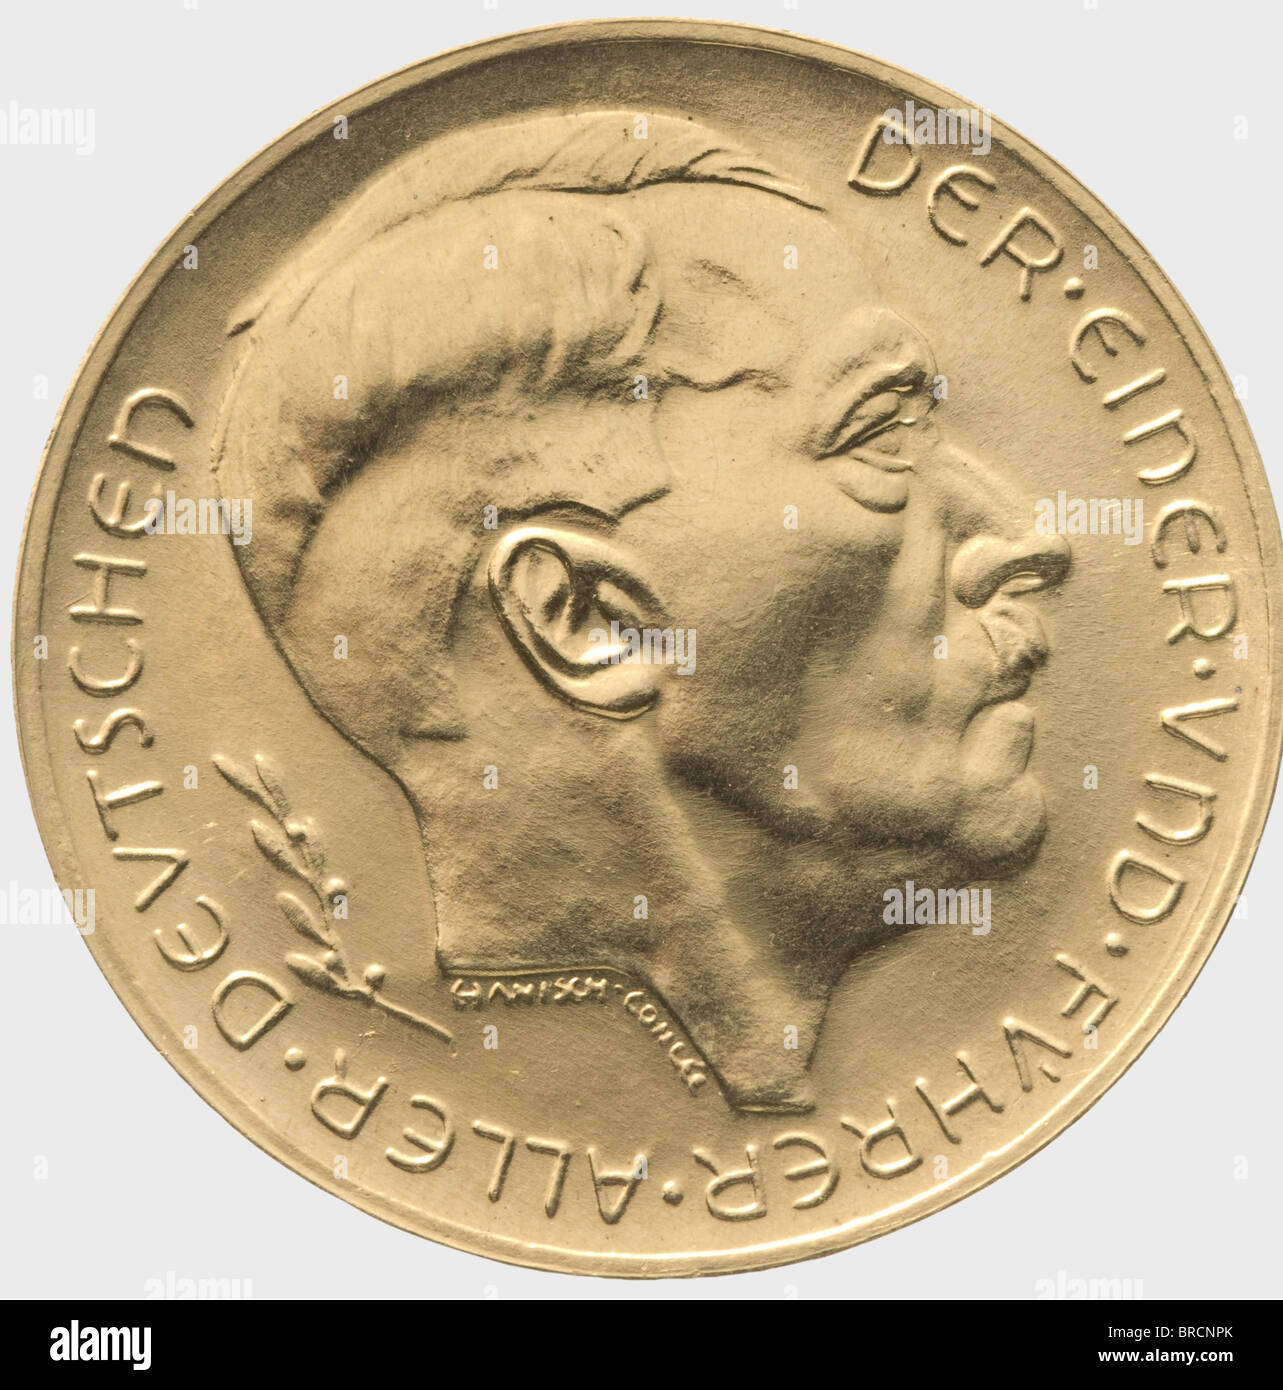 A gold medal, Das Großdeutsche Reich ist entstanden 1938 - 39 Gold. The front bears an orb surrounded by the - Stock Image